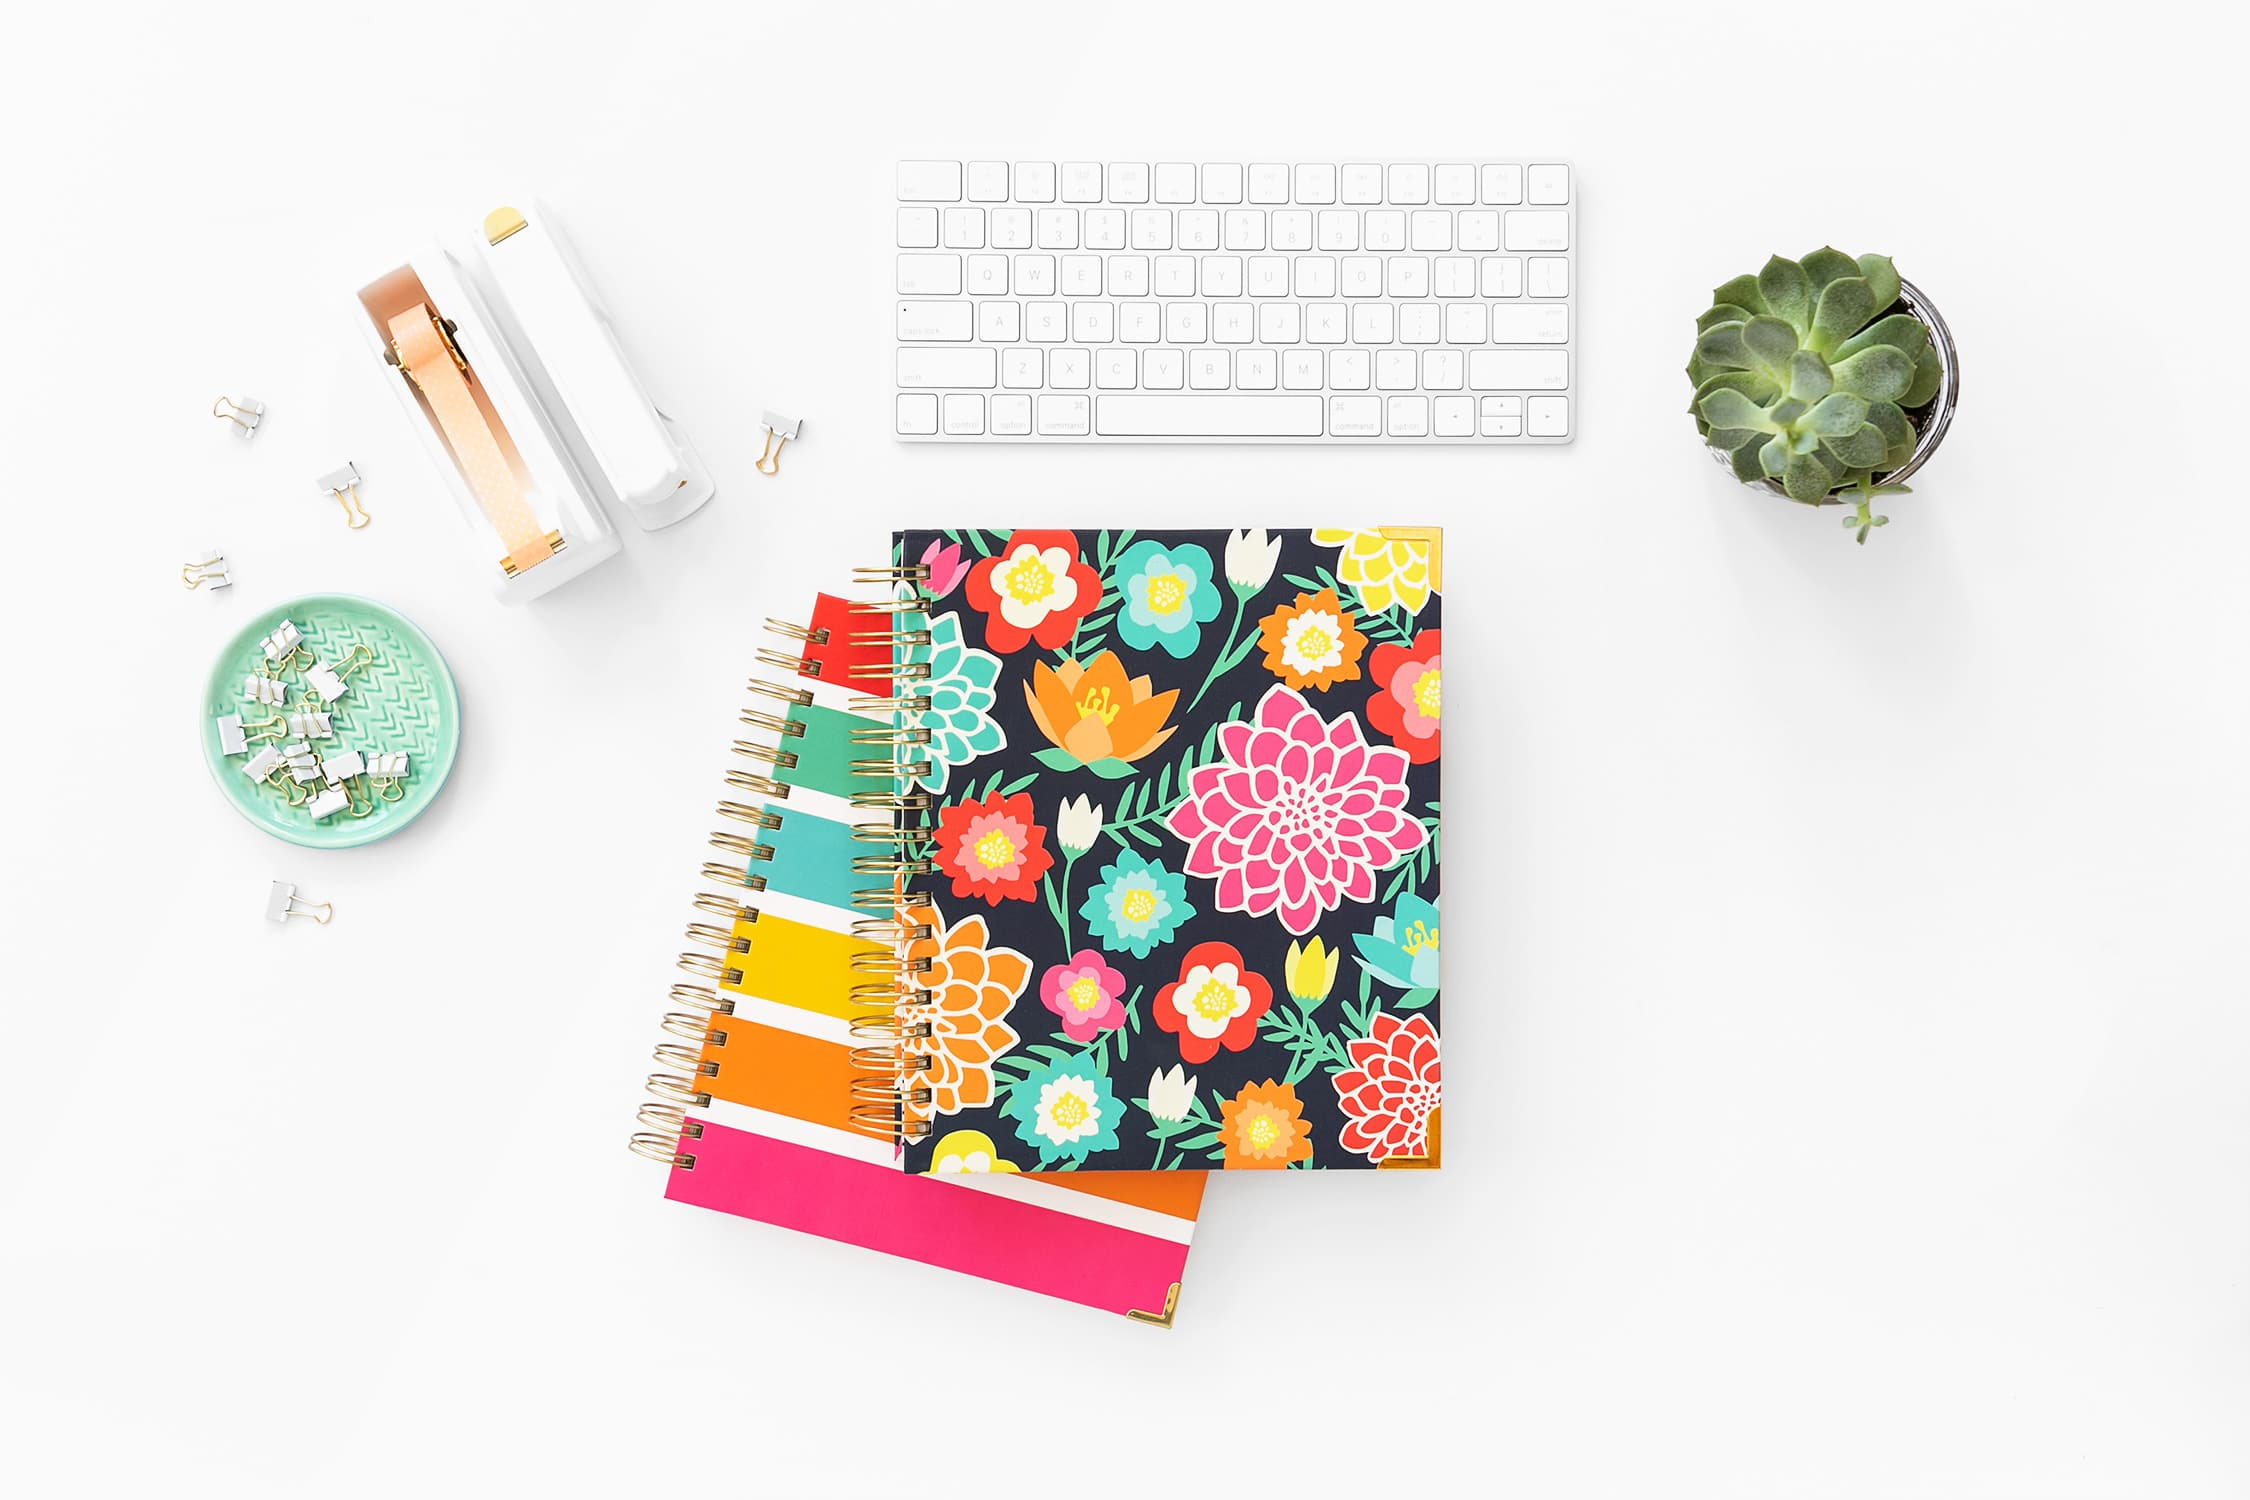 Are you ready to set goals and achieve them? The Living Well Planner is your best tool